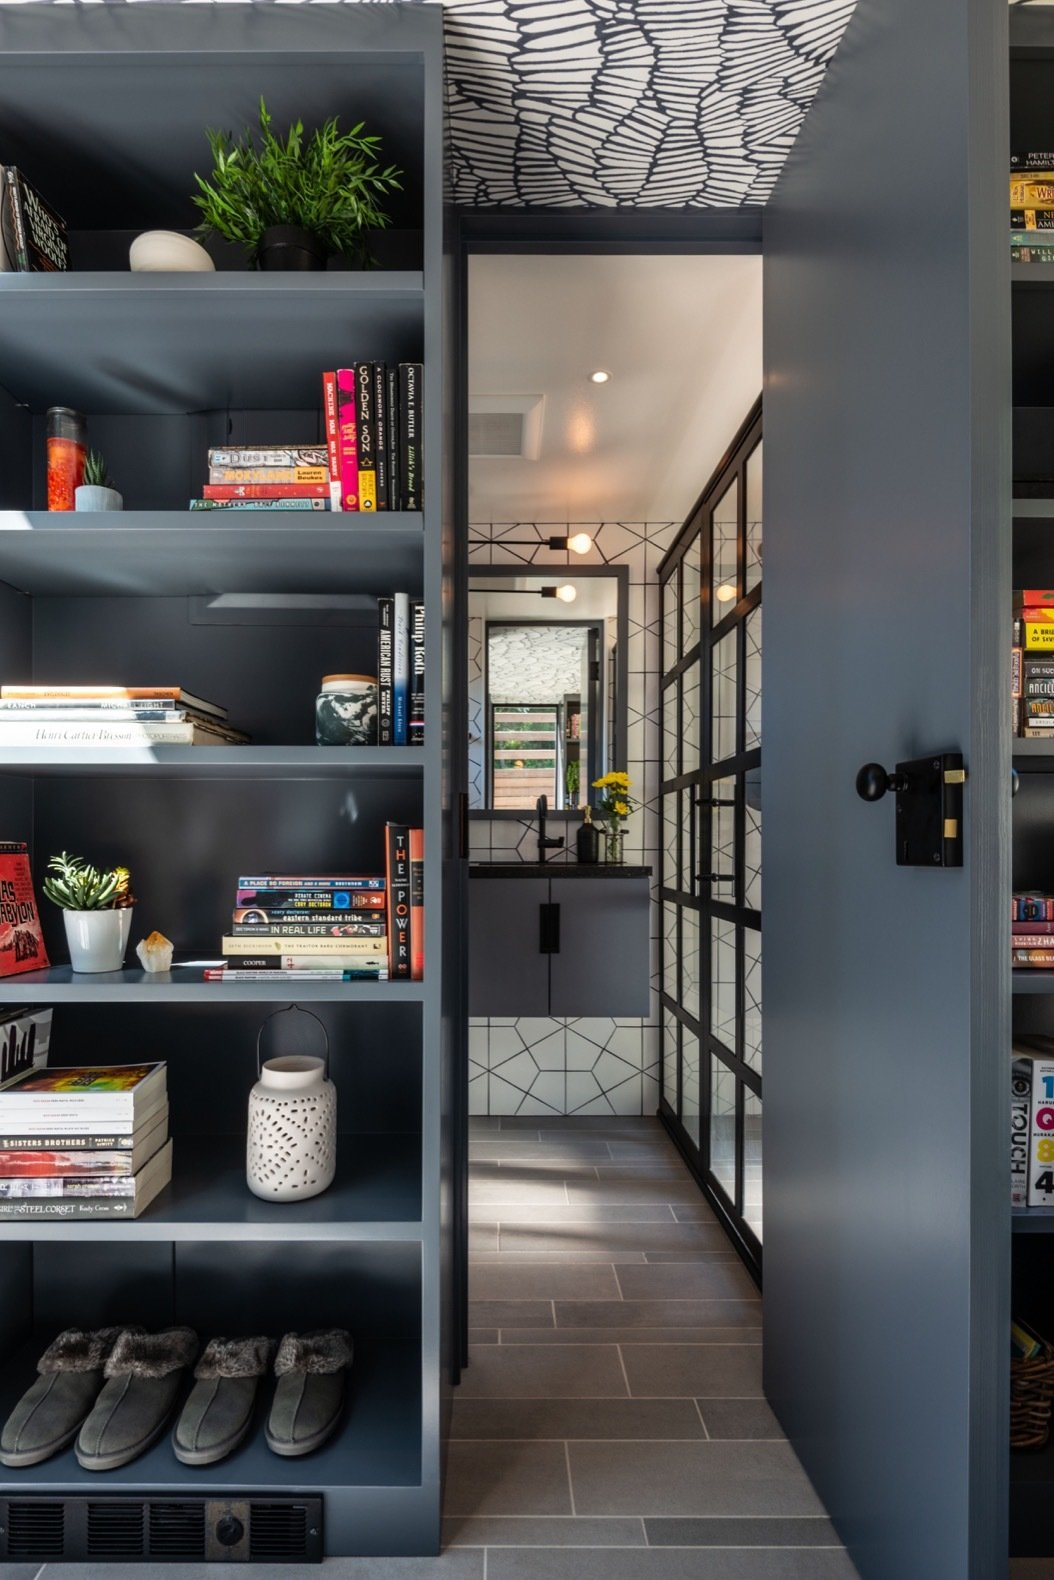 Doors, Swing, and Interior The entrance to the bathroom is tucked between two bookshelves.   Best Doors Interior Swing Photos from A Seattle Backyard Becomes a Calm Oasis For Two Book Lovers